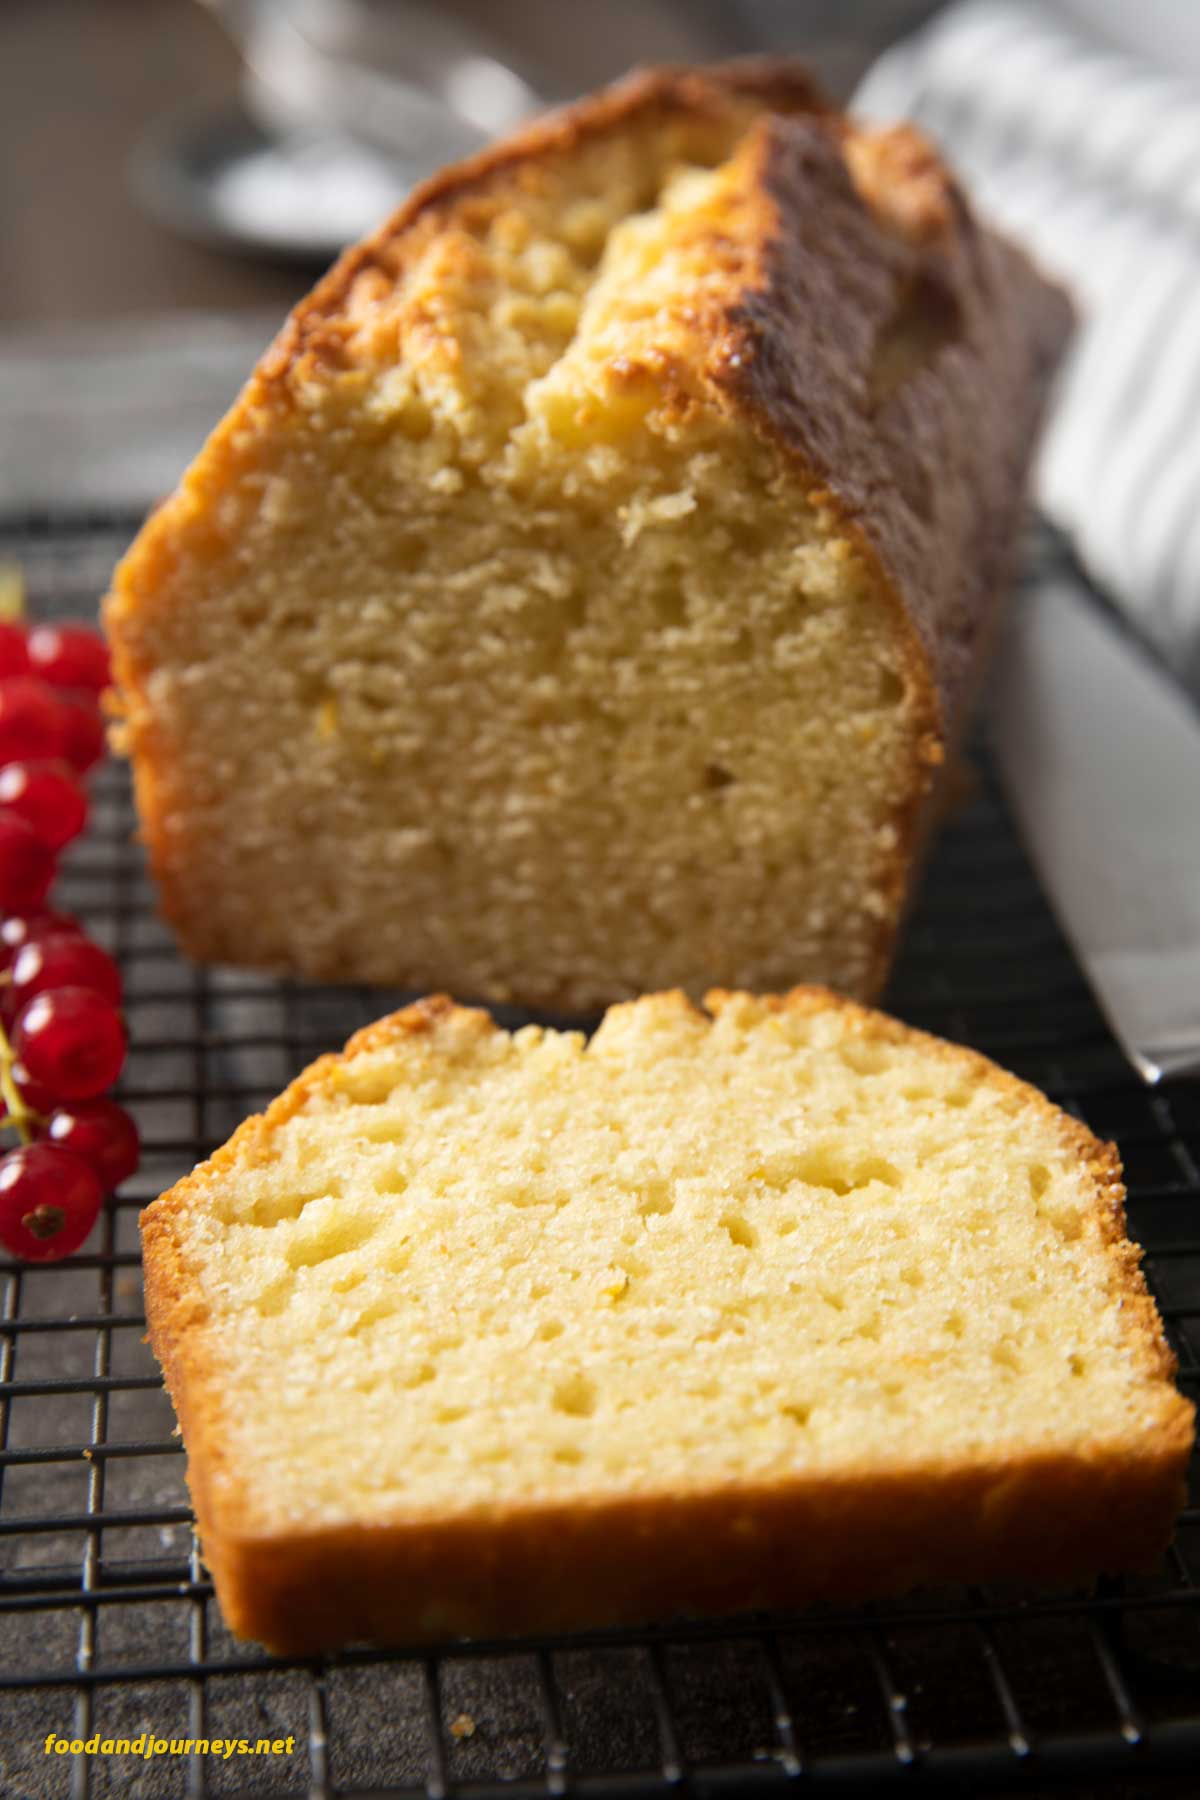 A closer shot of a slice of a freshly made orange yogurt cake,